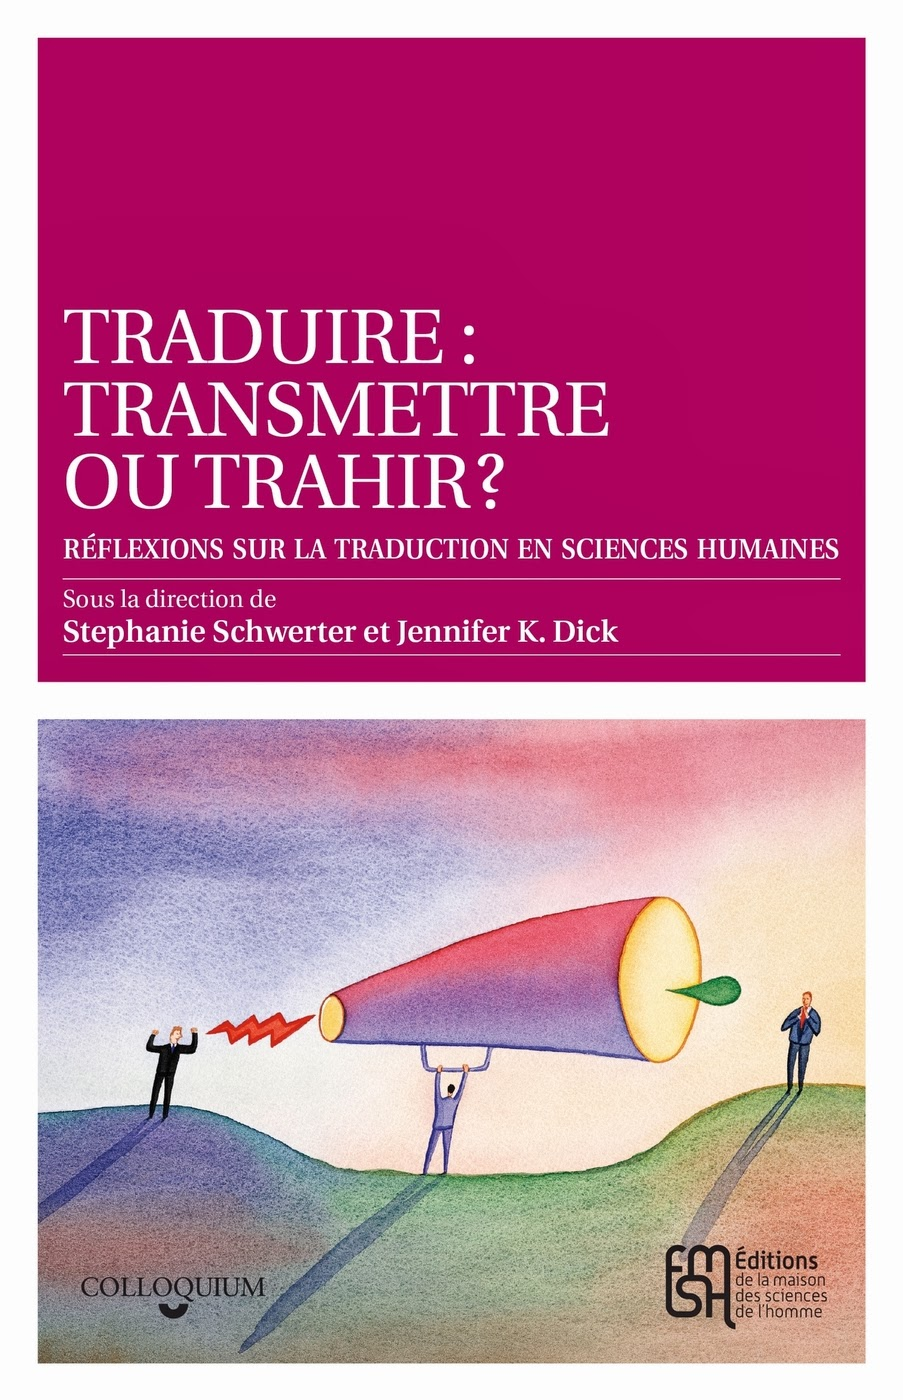 NEW! Jennifer K Dick and Stephanie Schwerter's Traduire: transmettre ou trahir? (MSH, Nov 2013)